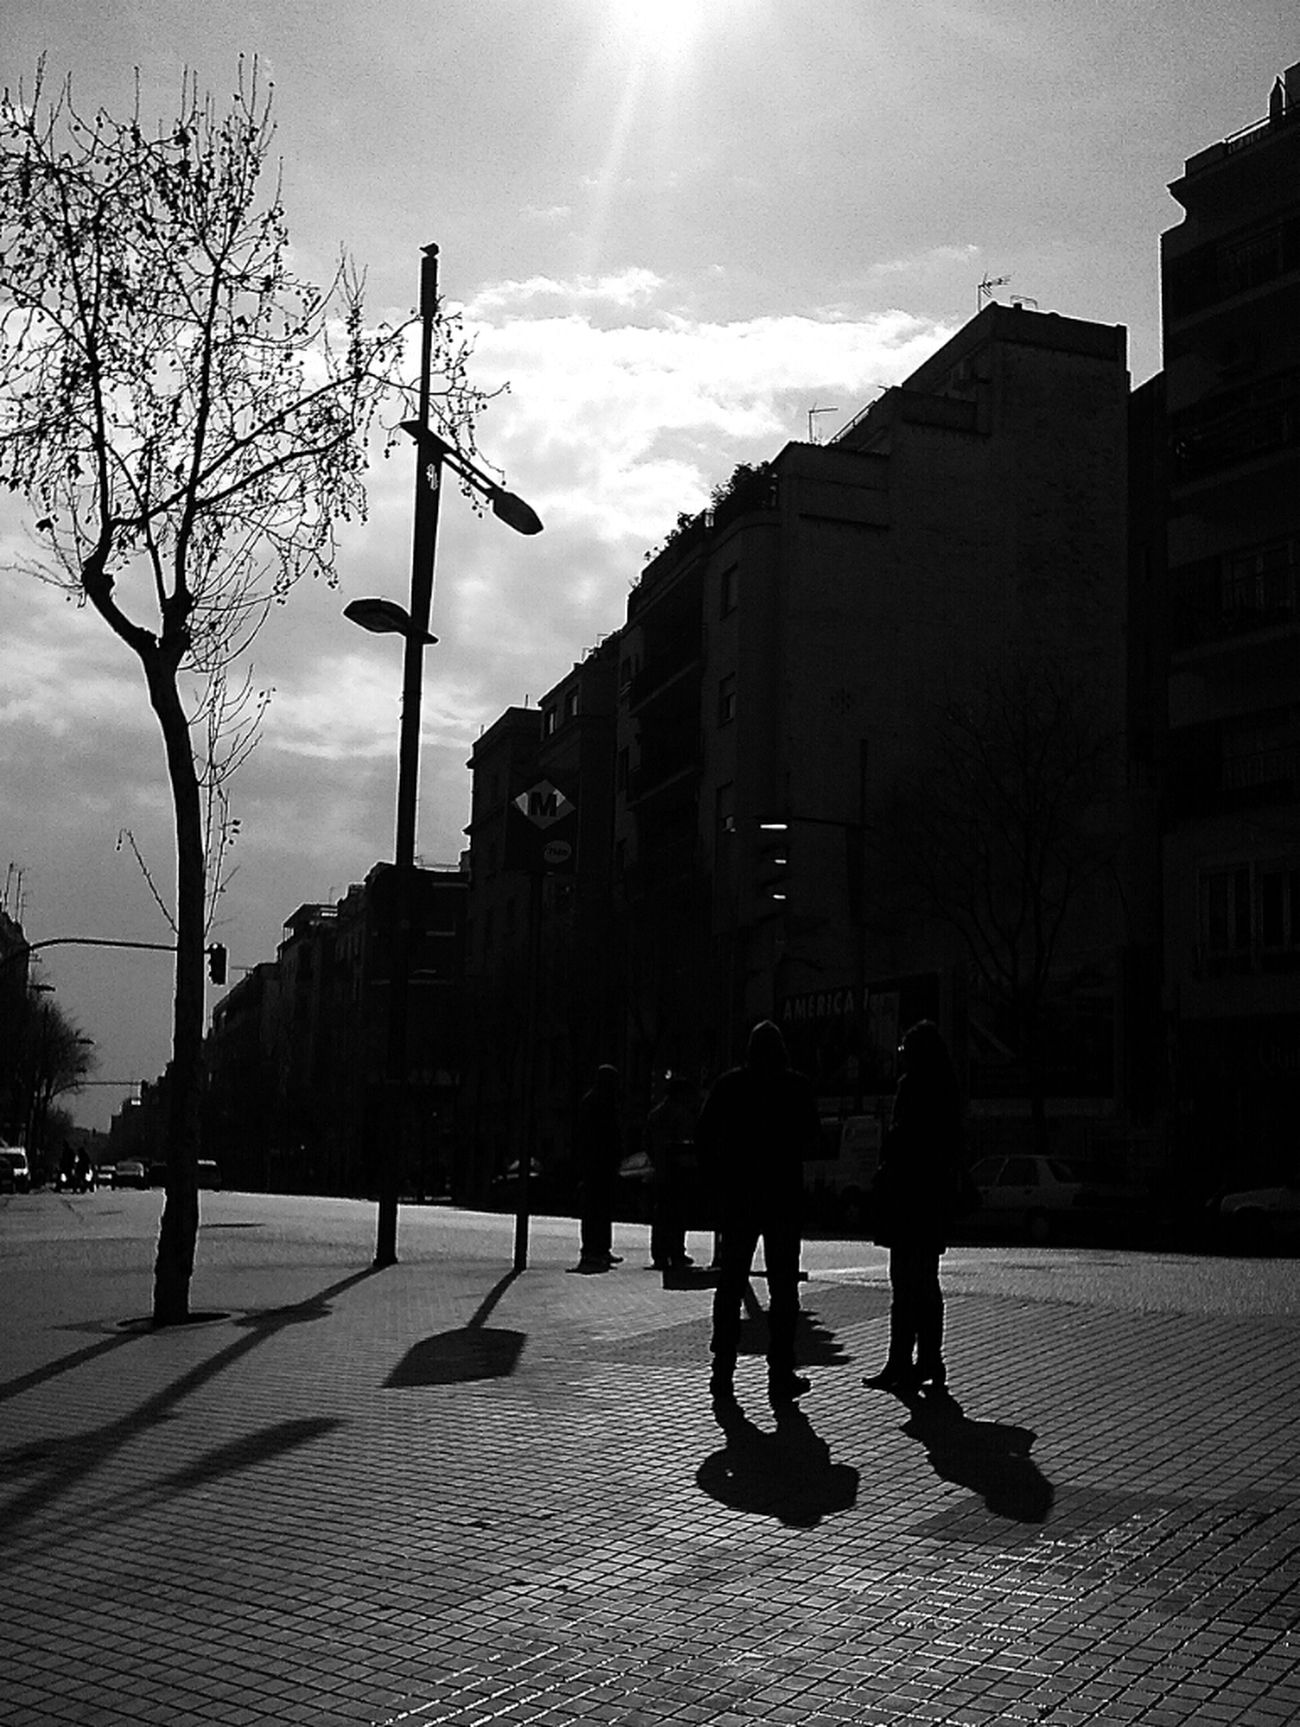 Street Streetphotography Blackandwhite Barcelona Streetphoto_bw Bw_collection